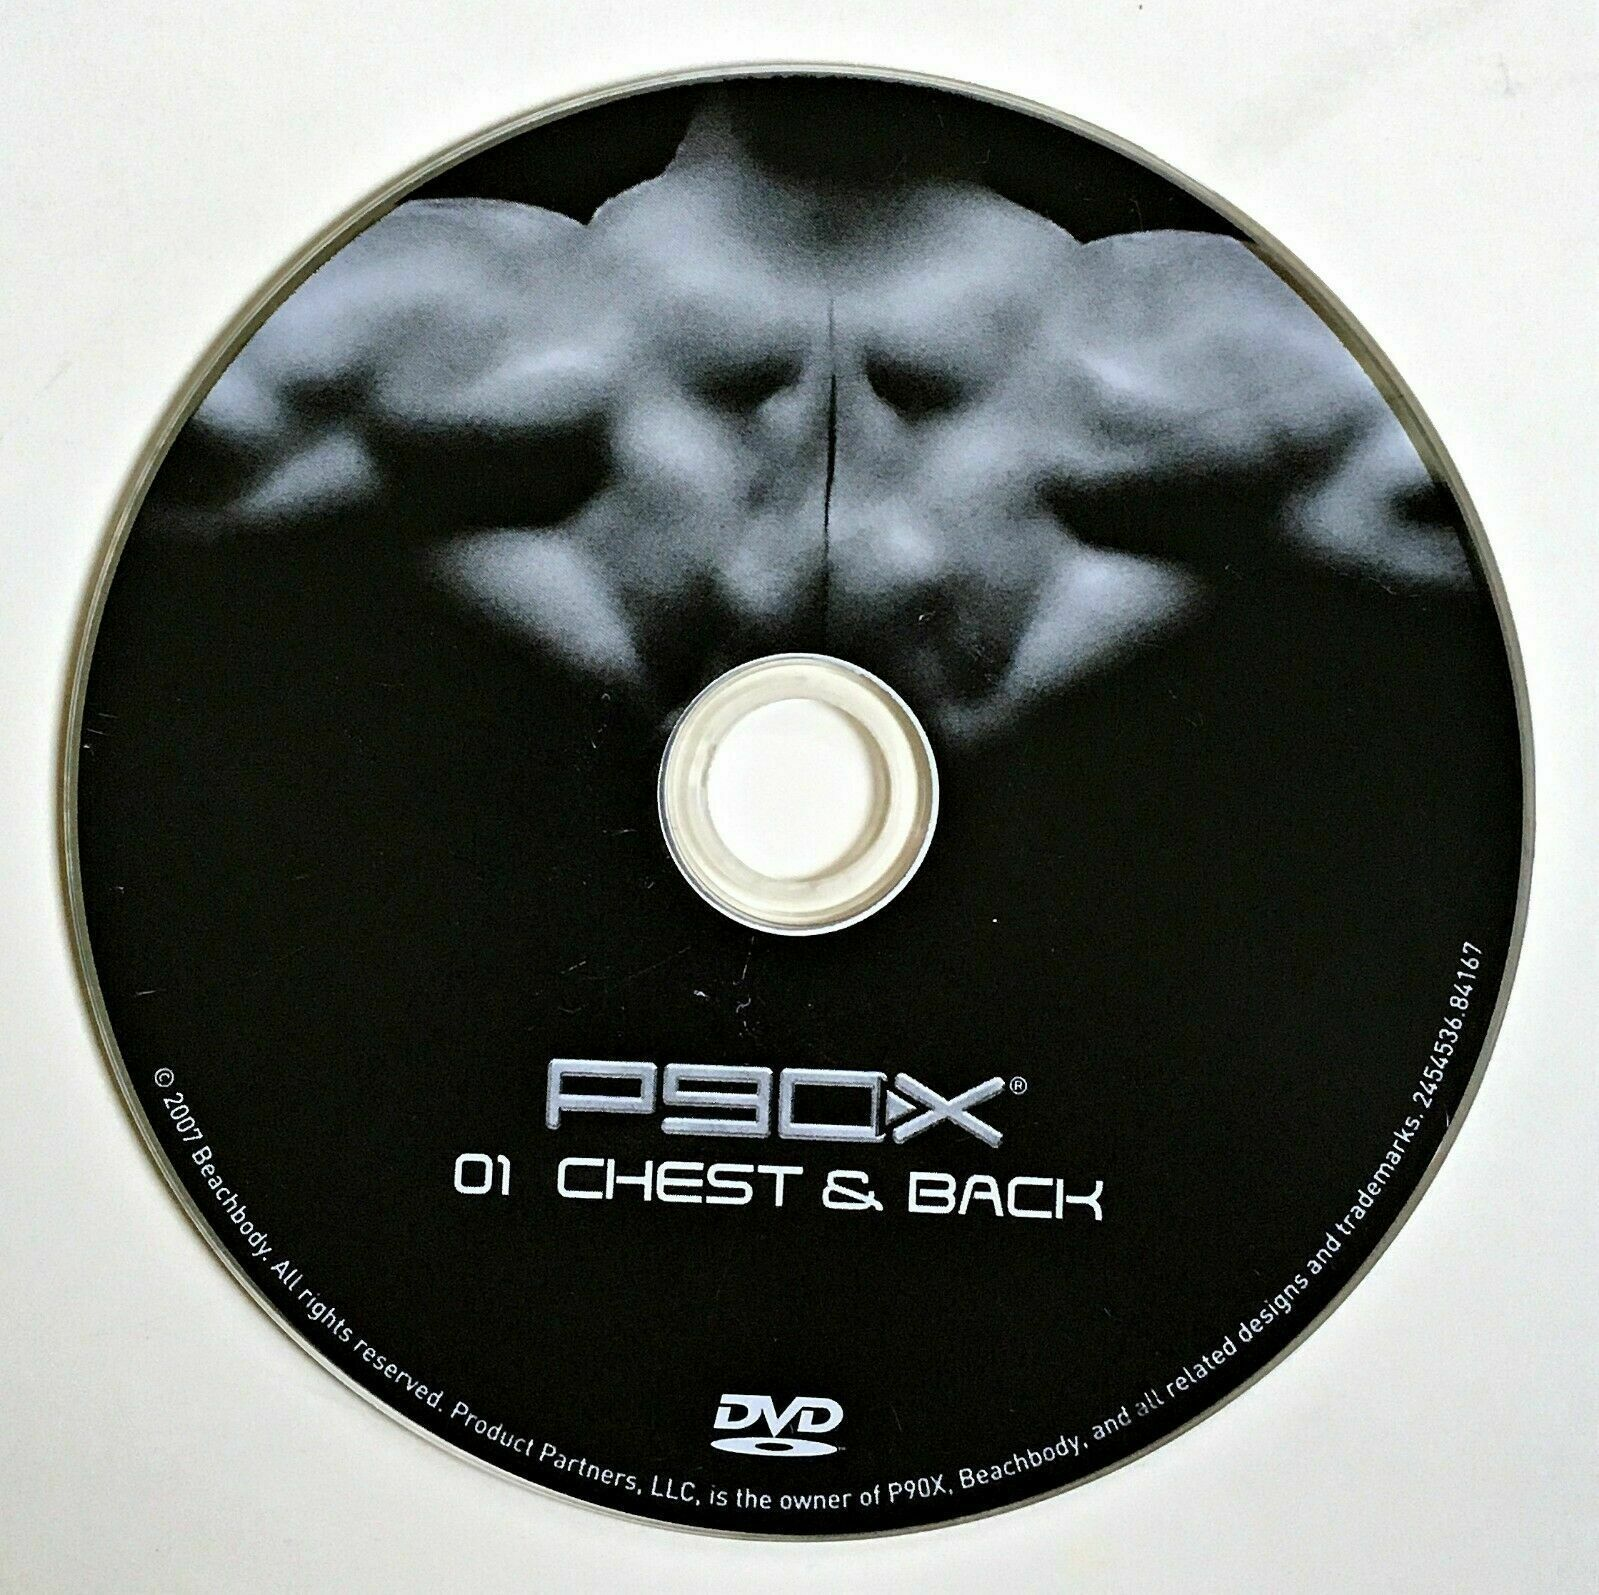 P90X Replacement DVD - 01 CHEST & BACK - Beachbody Extreme Home Fitness